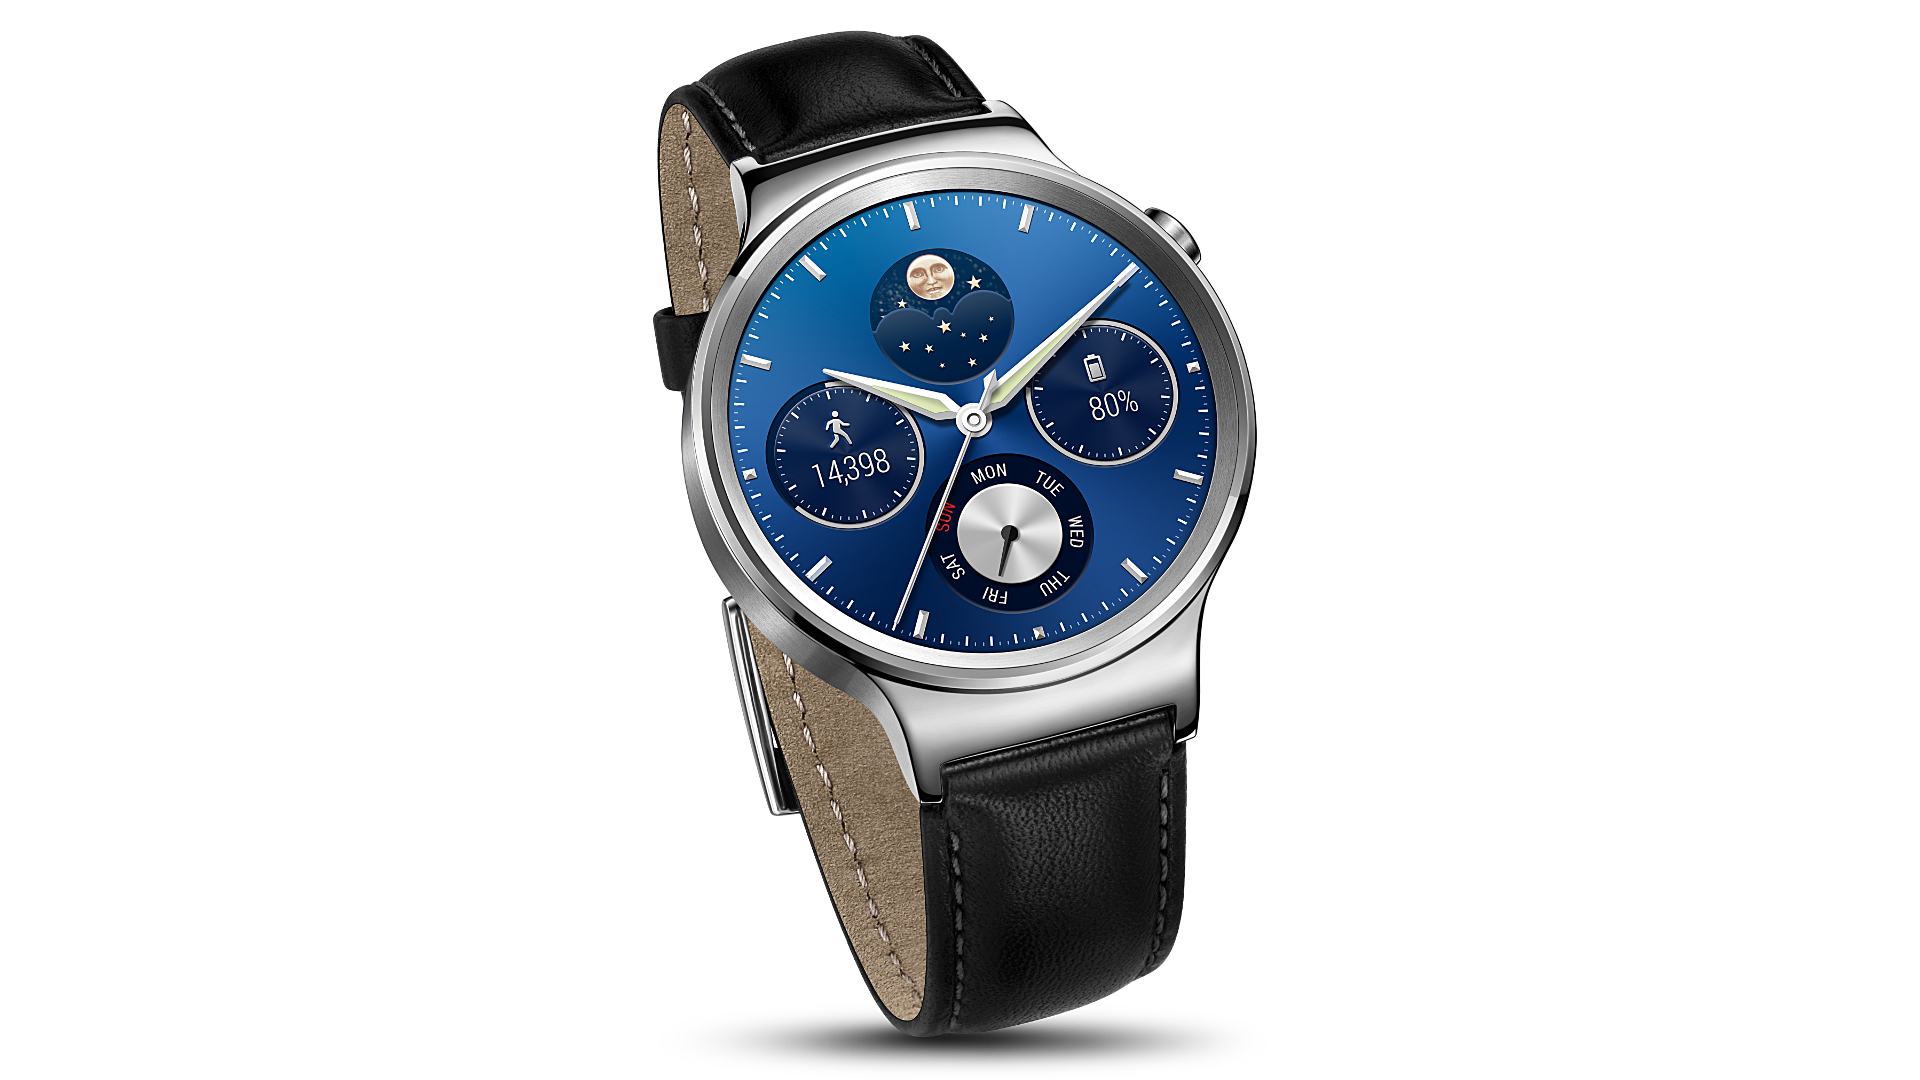 Up and Coming: Huawei Watch and Future-Forward Fashion